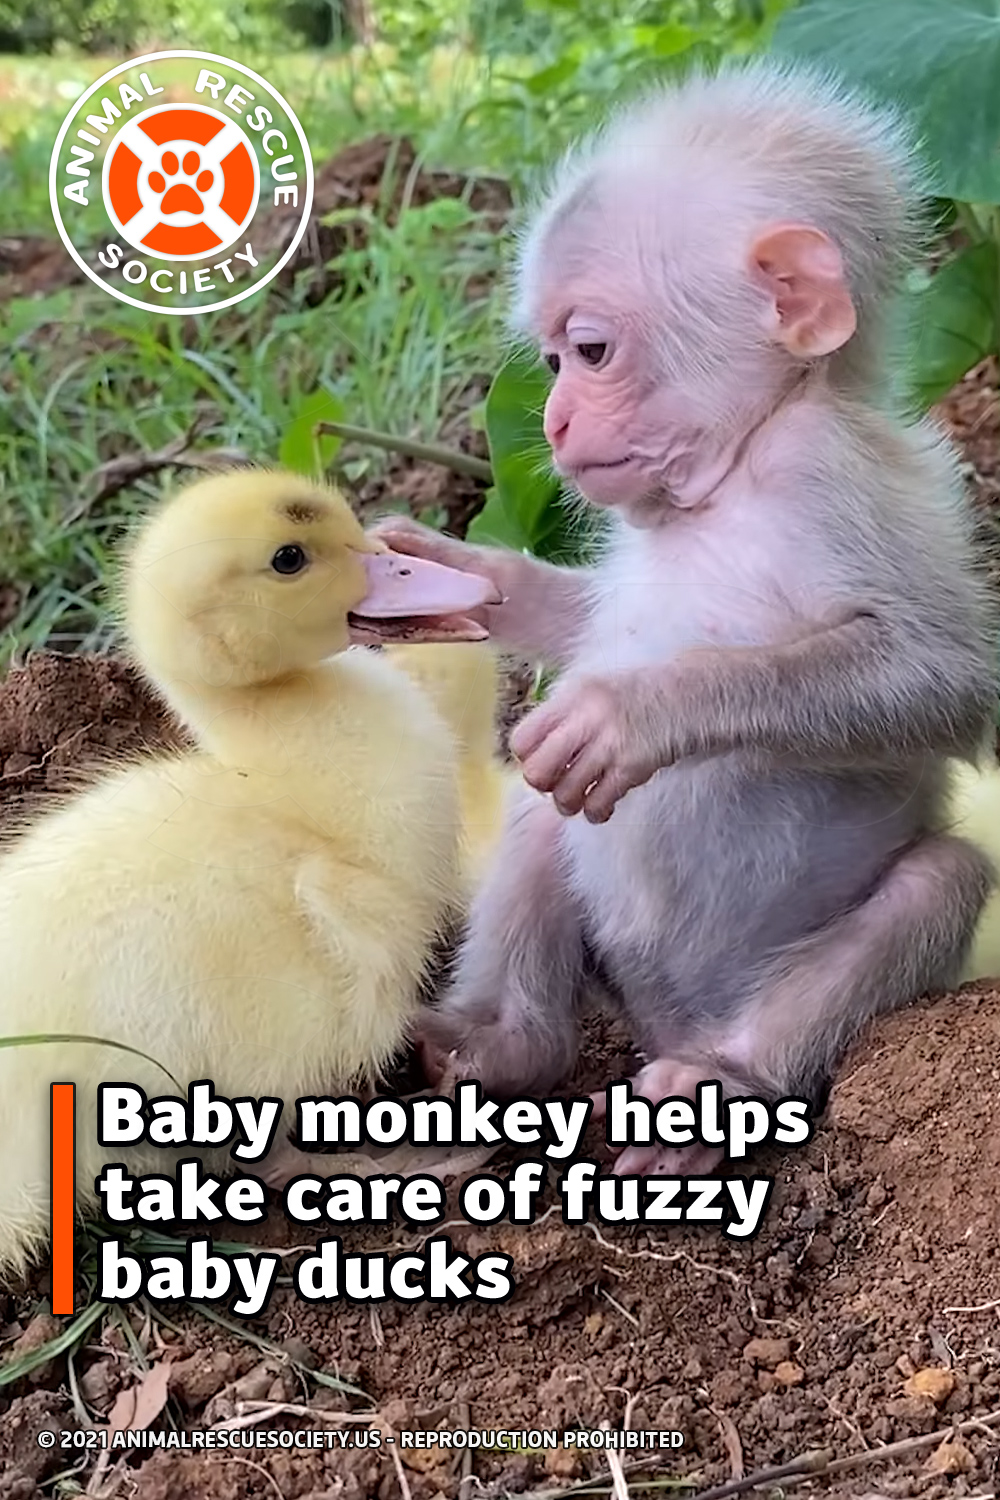 Baby monkey helps take care of fuzzy baby ducks